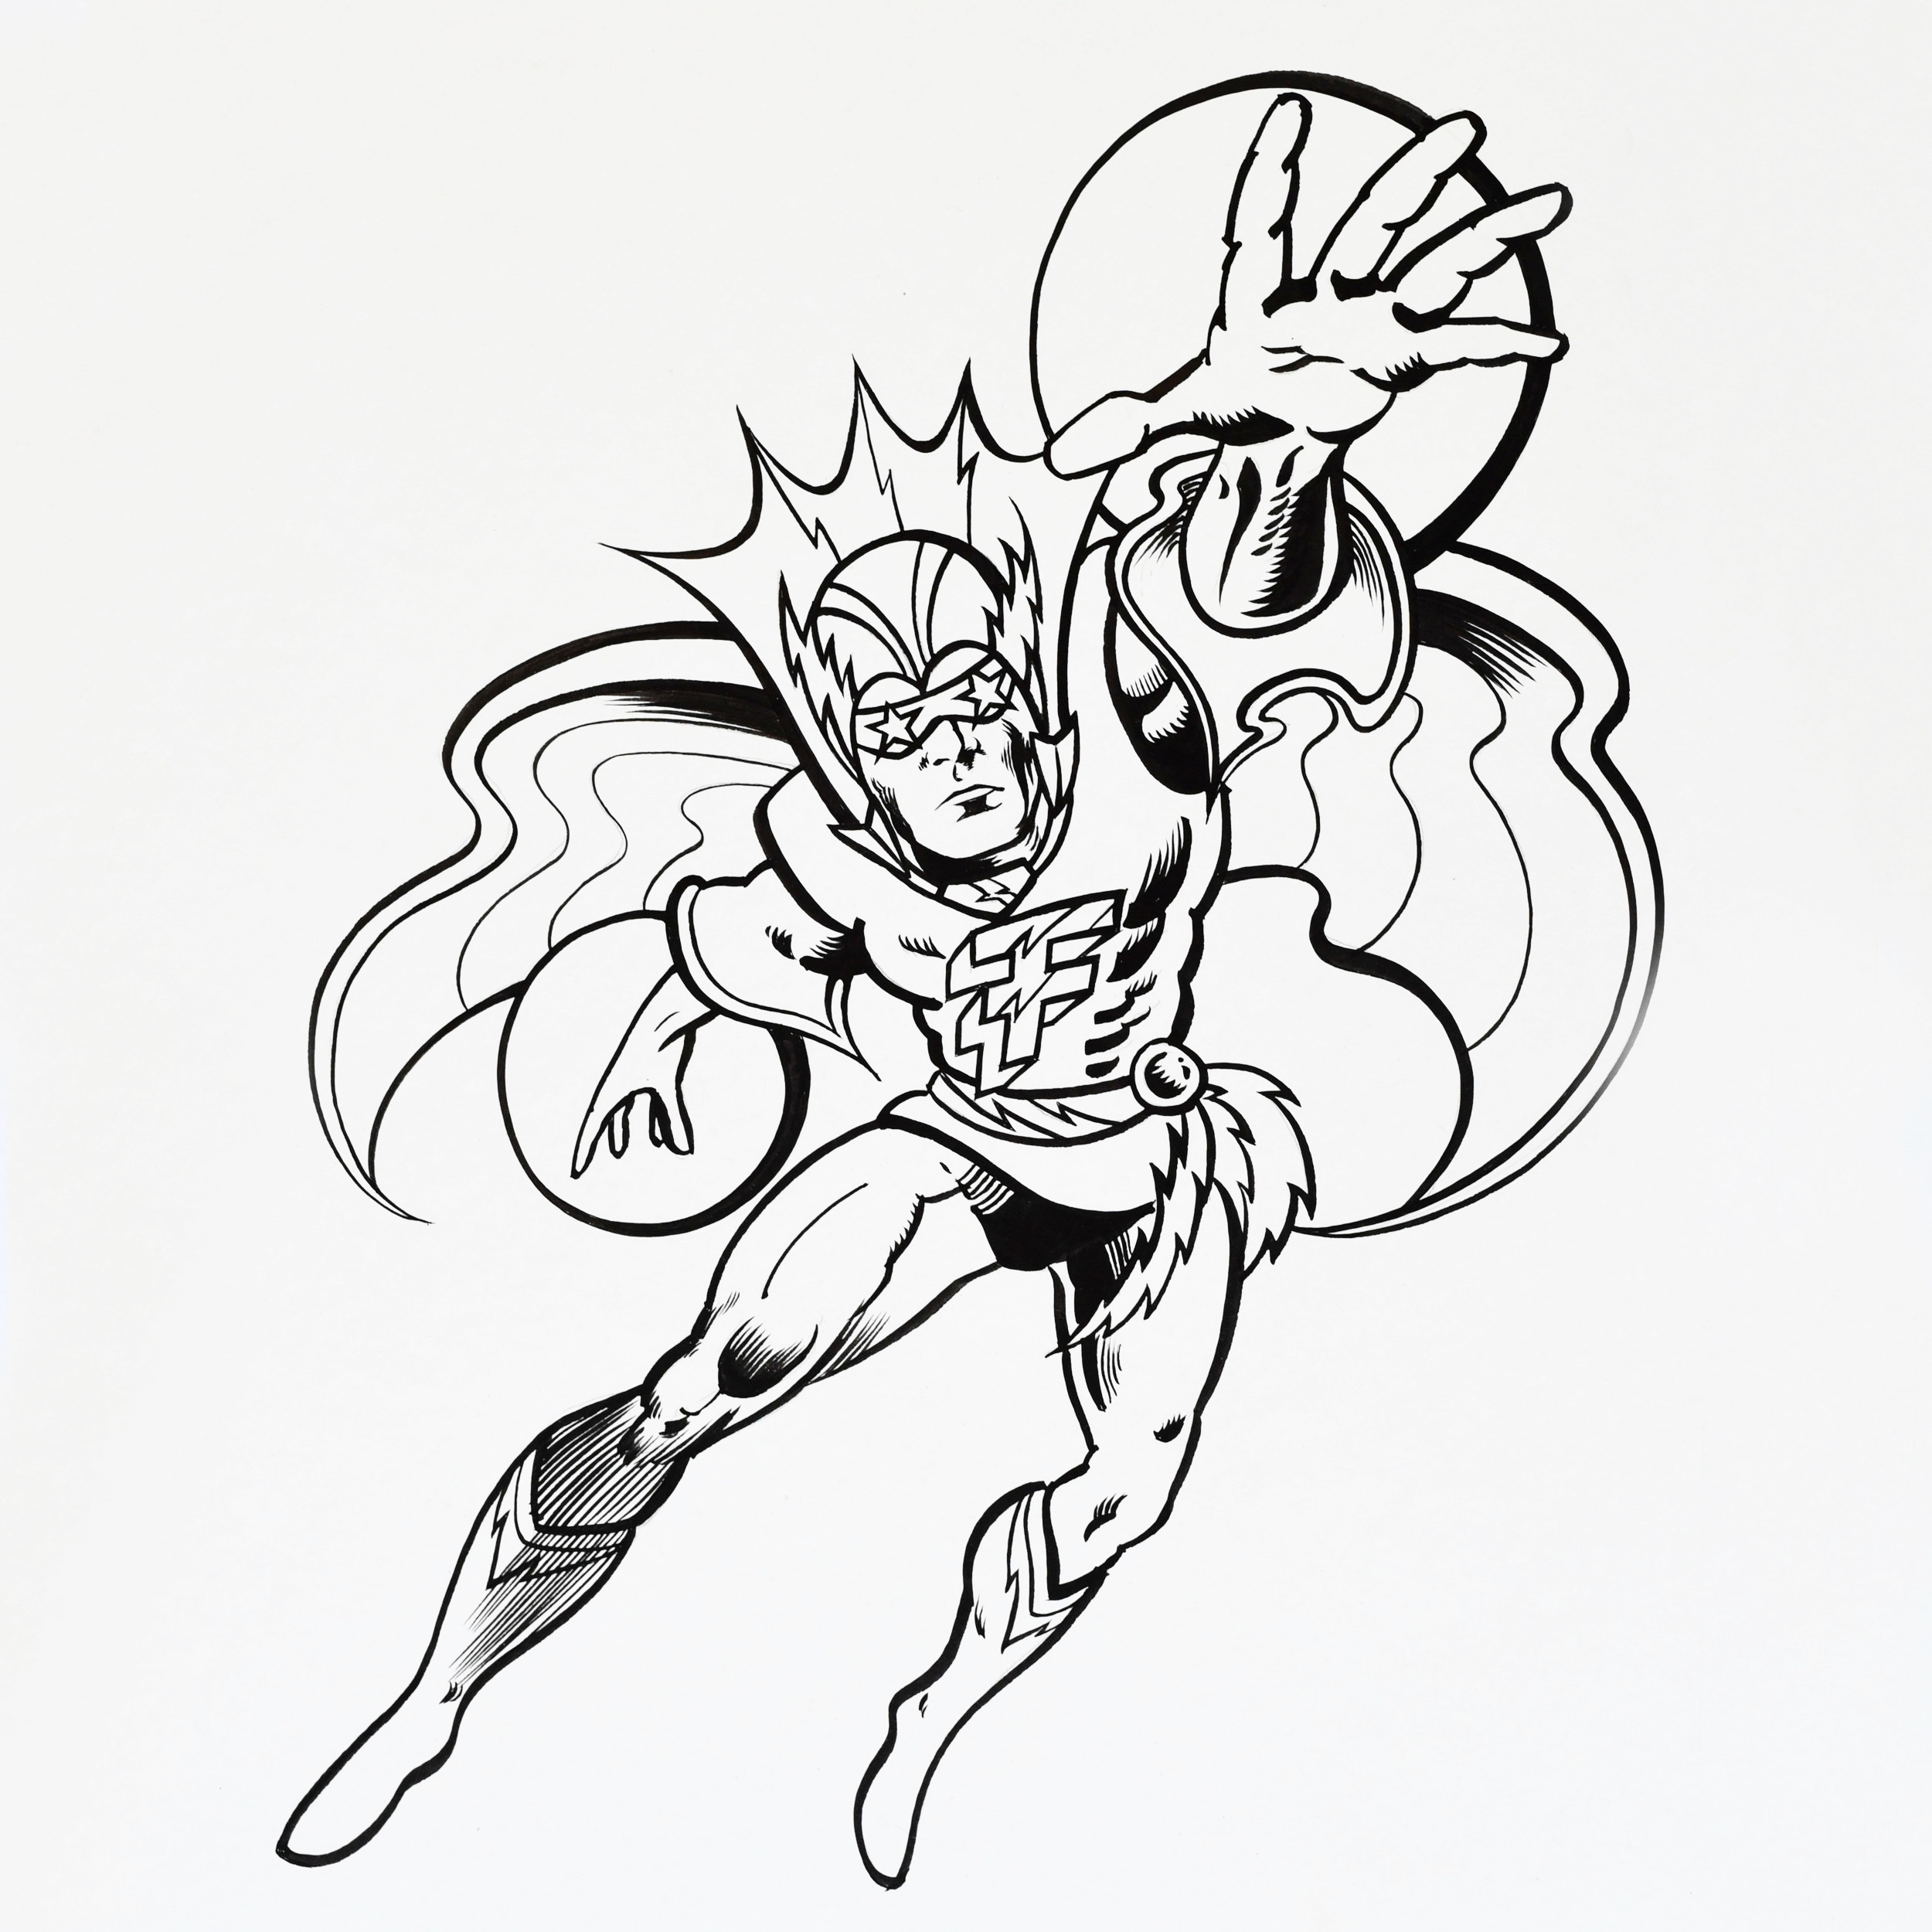 Superhero animation using ink and pen on artboard.